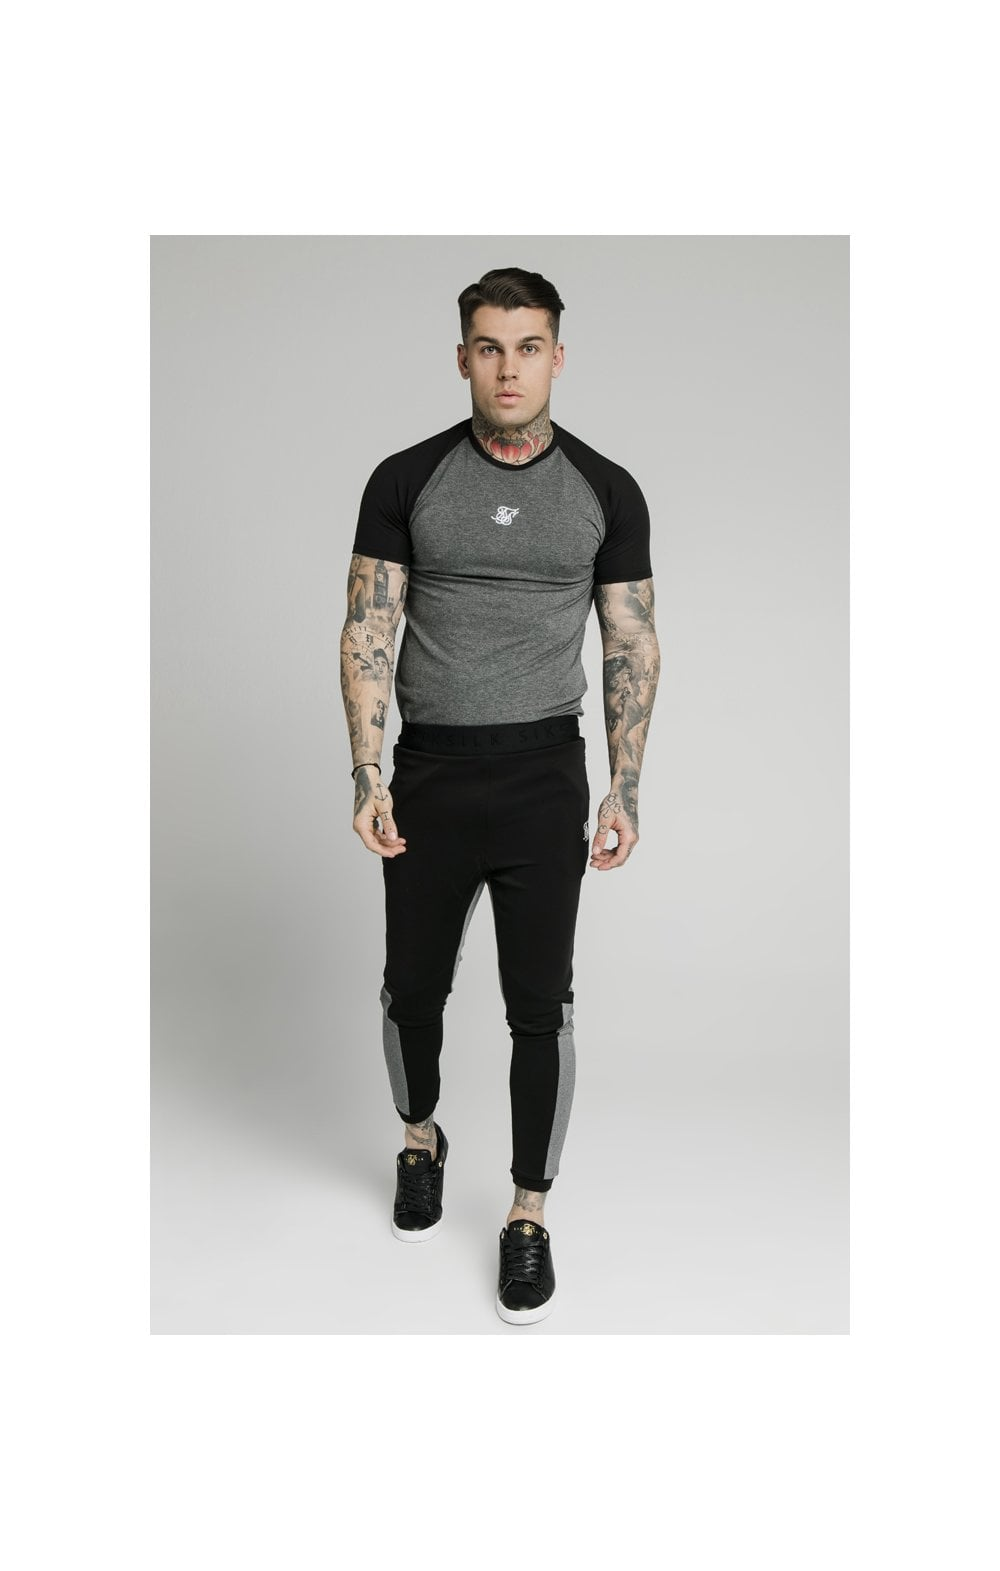 SikSilk Endurance Gym Tee - Black & Grey (2)